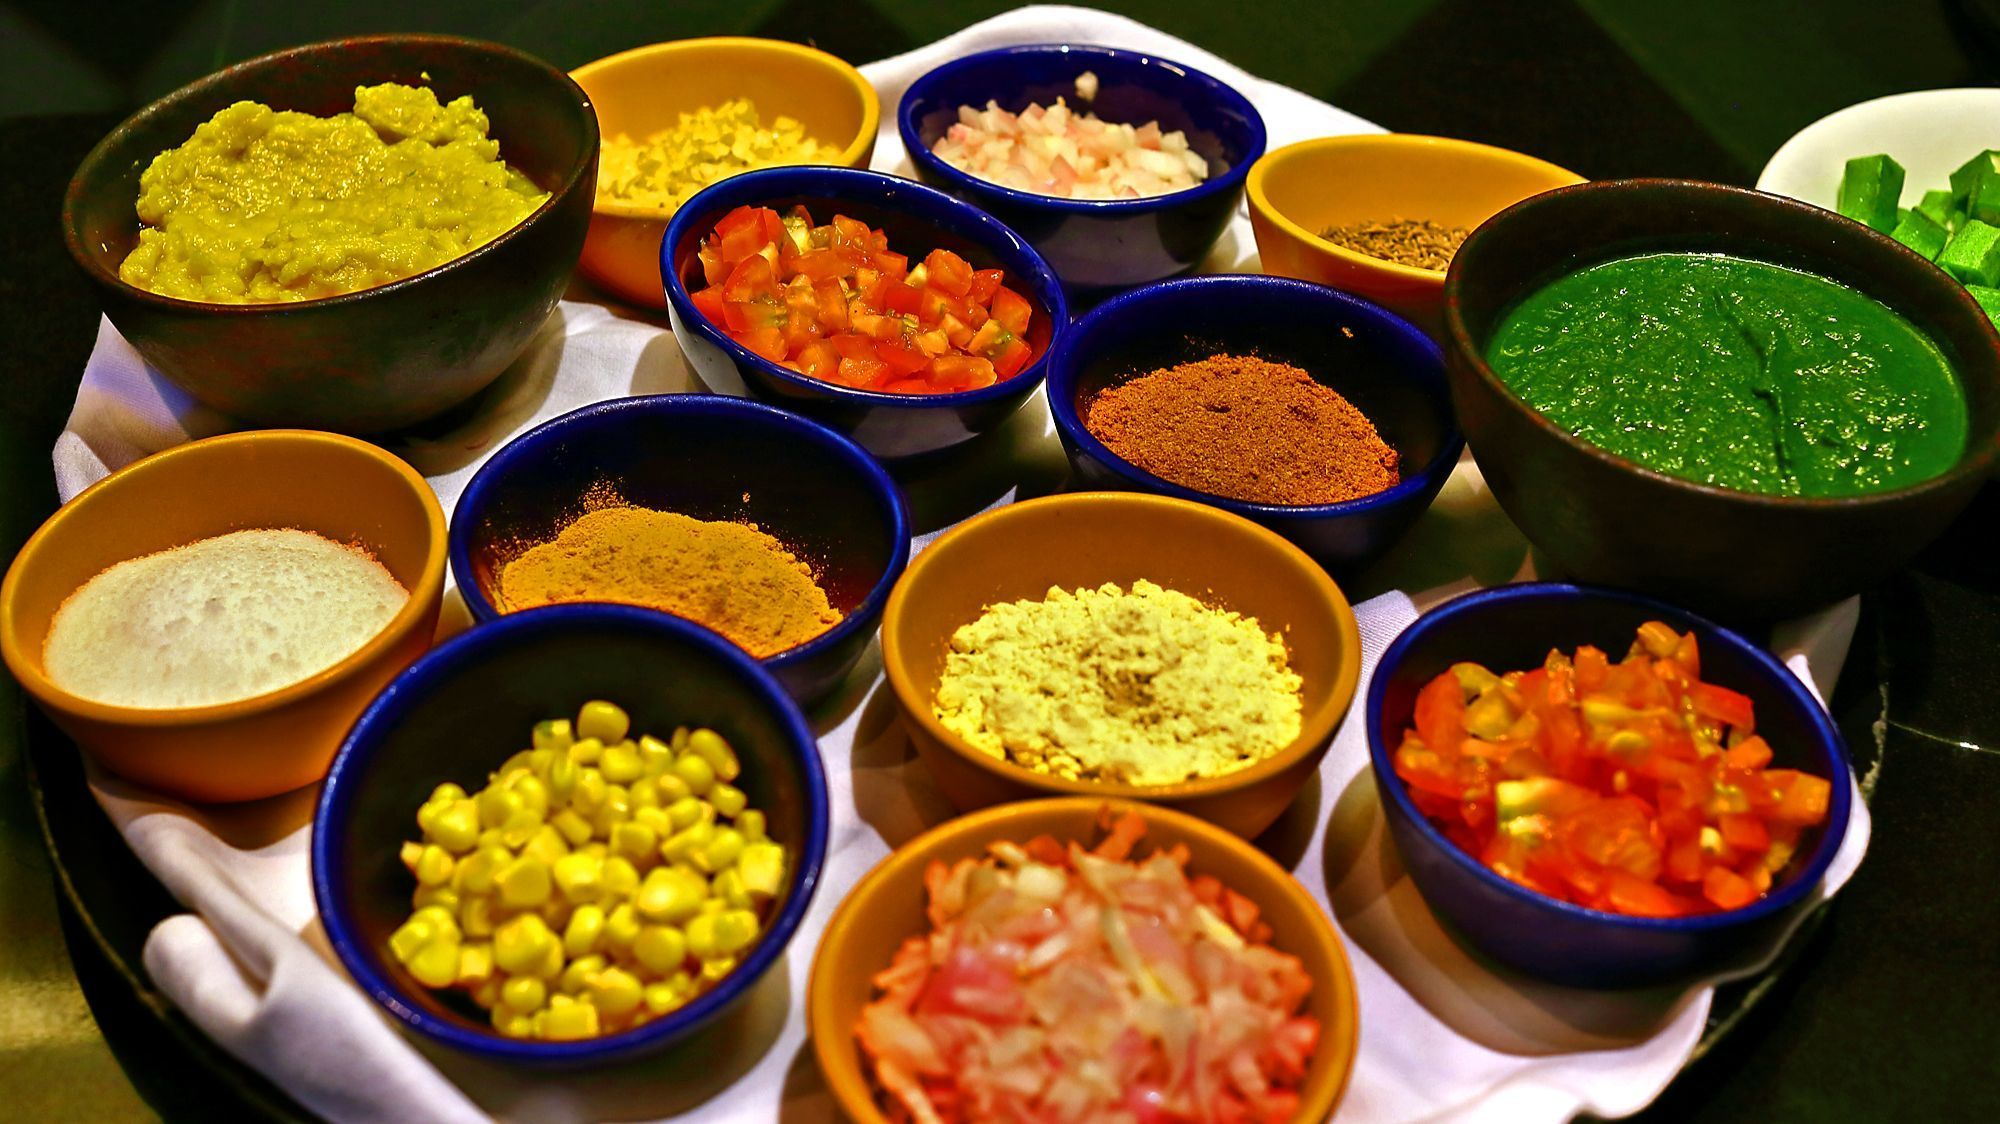 Ayurveda ingredients offer balance and different energies.